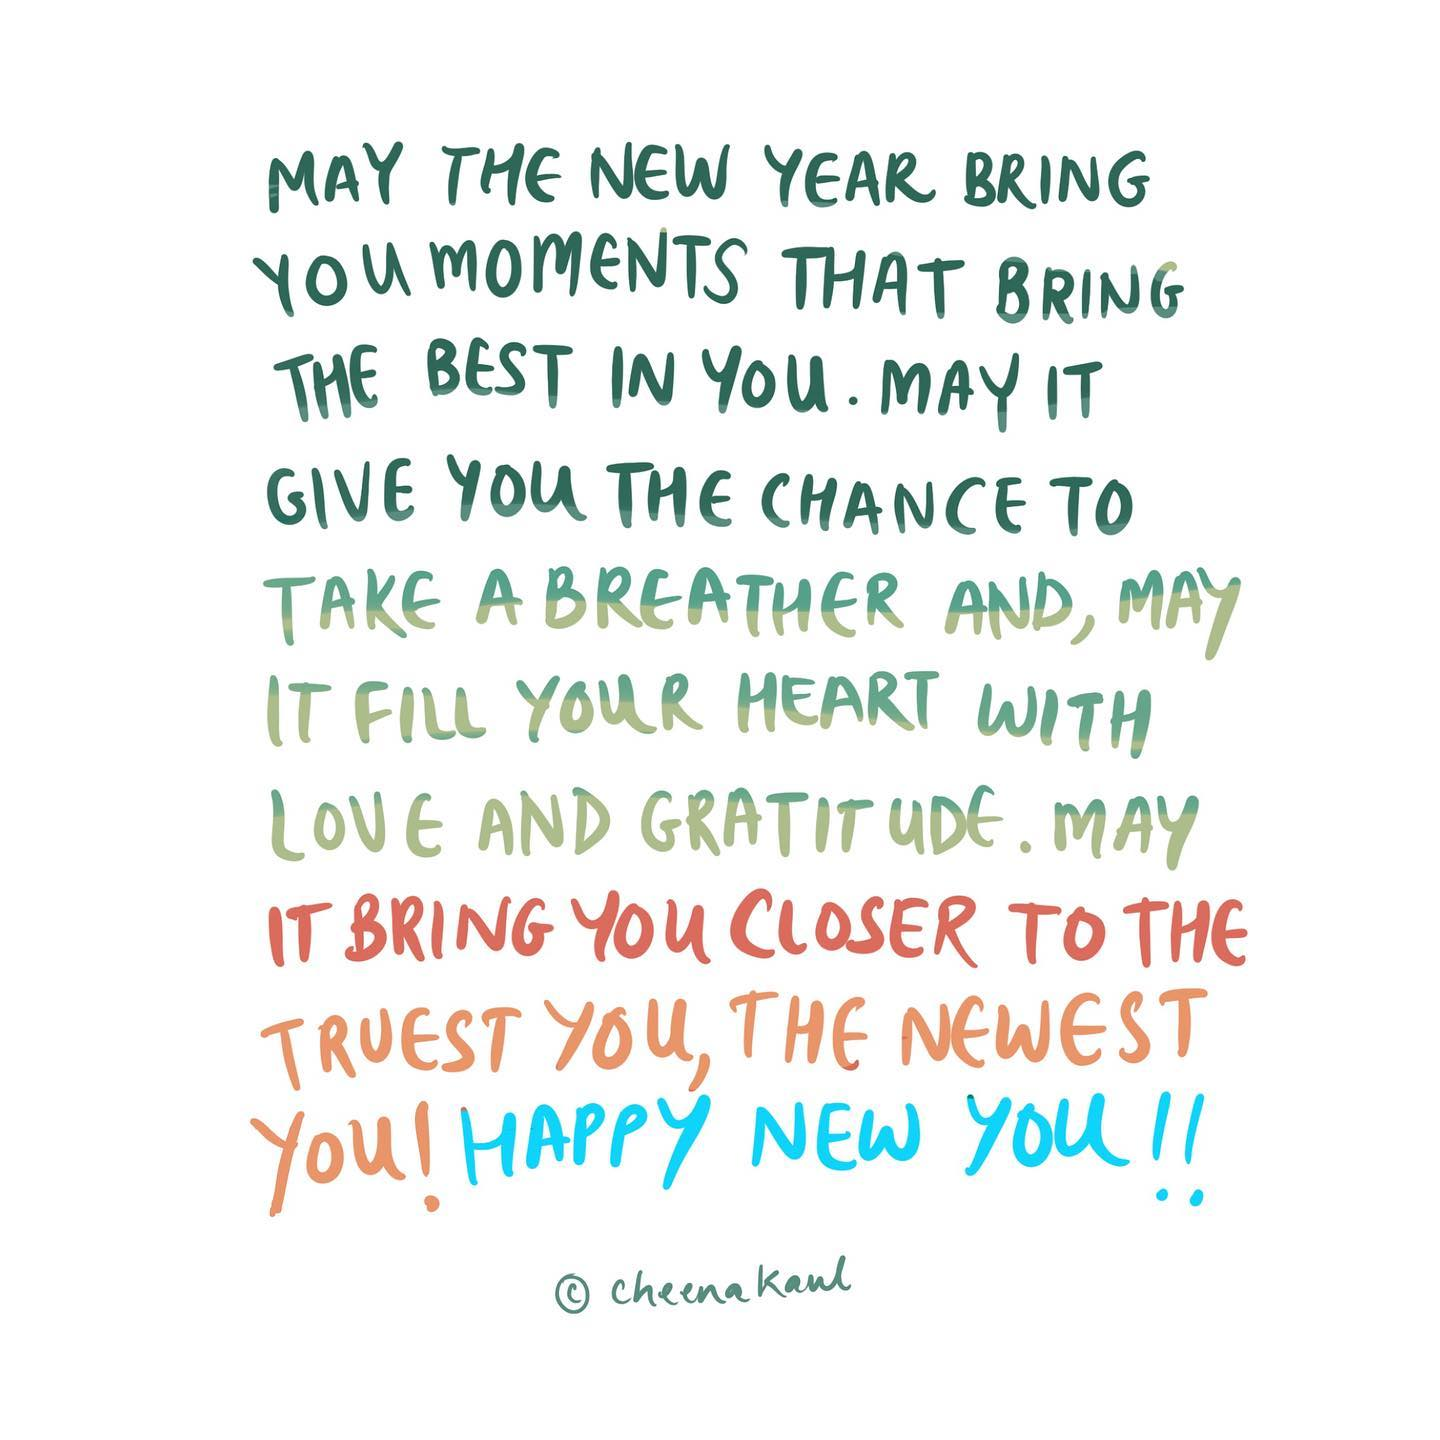 May the New Year bring you moments that bring the best in you. May it give you the chance to take a breather and, may it fill your heart with love and gratitude. May it bring you closer to the truest you, the newest you!   Happy New you!!  C